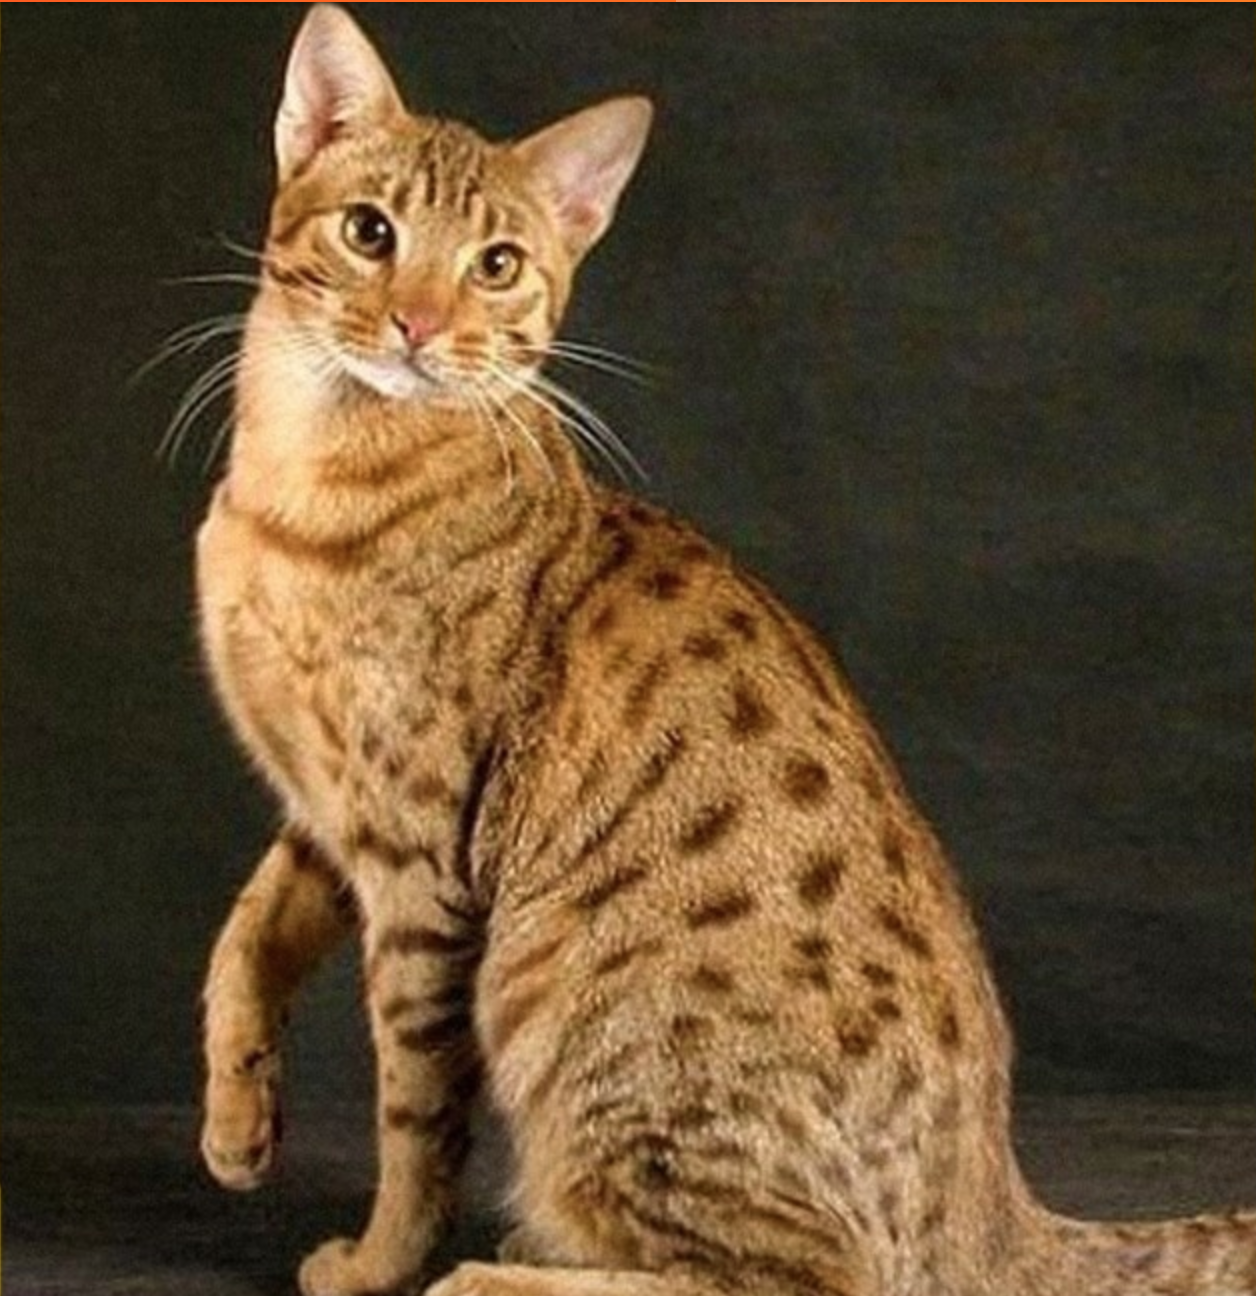 The Serengeti Is A Breed Of Domestic Cat First Developed By Crossing A Bengal Domestic And Wild Hybrid And An Oriental S Cats Norwegian Forest Cat Rare Cats